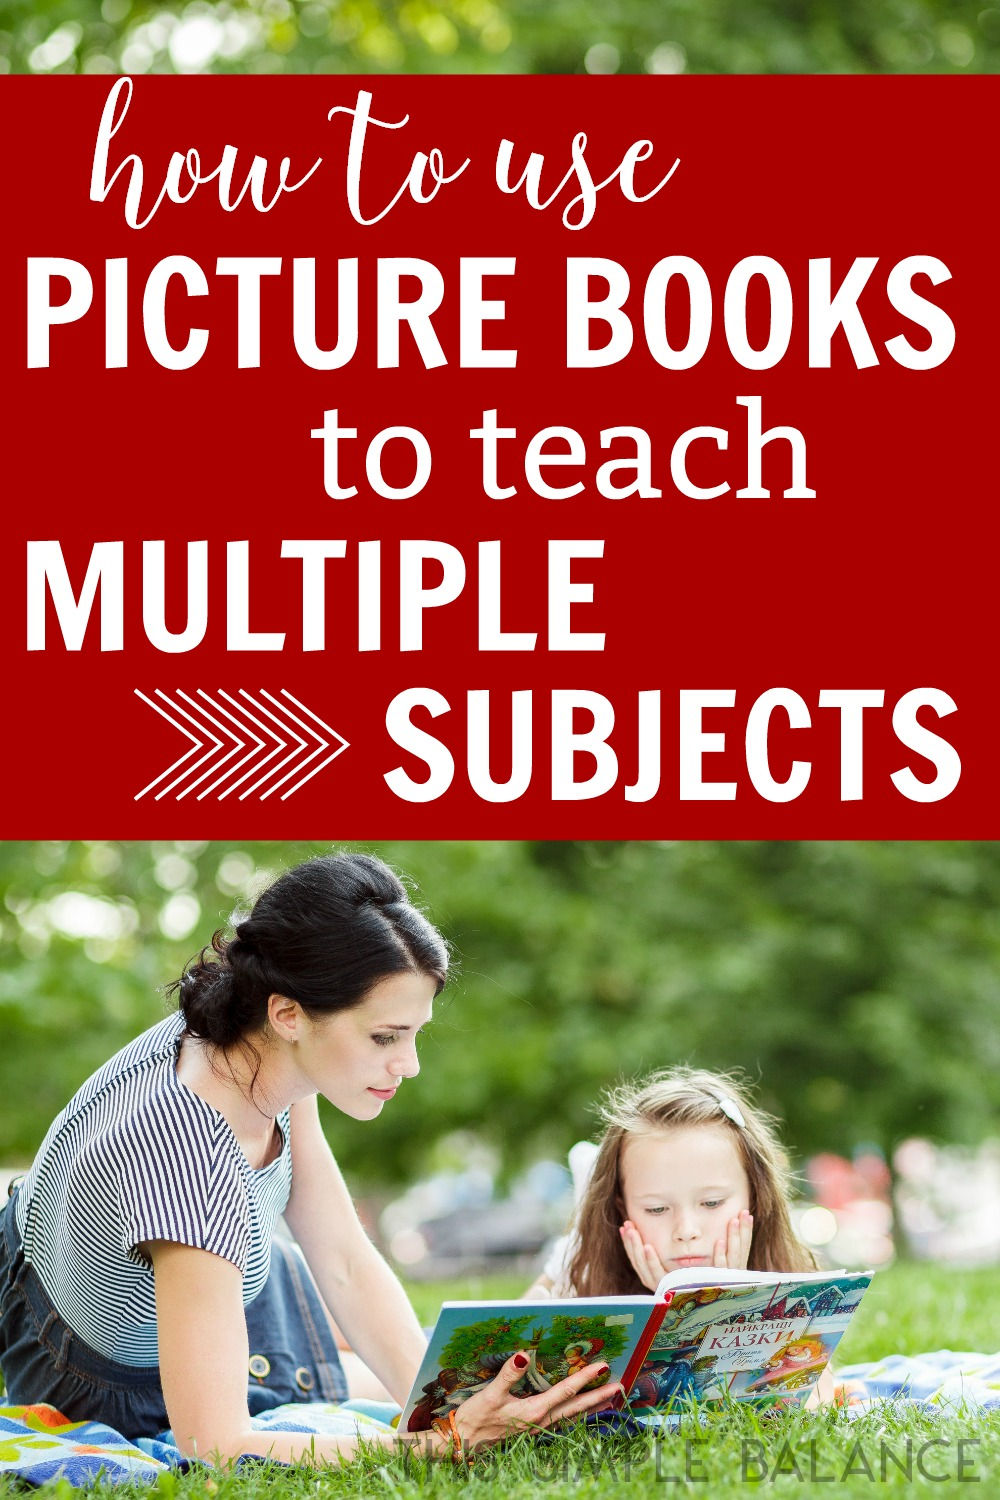 Picture books can be a HUGE asset in your homeschool, if you know how to use them to teach multiple subjects. Read this post to see how you can get the most out of every picture book.